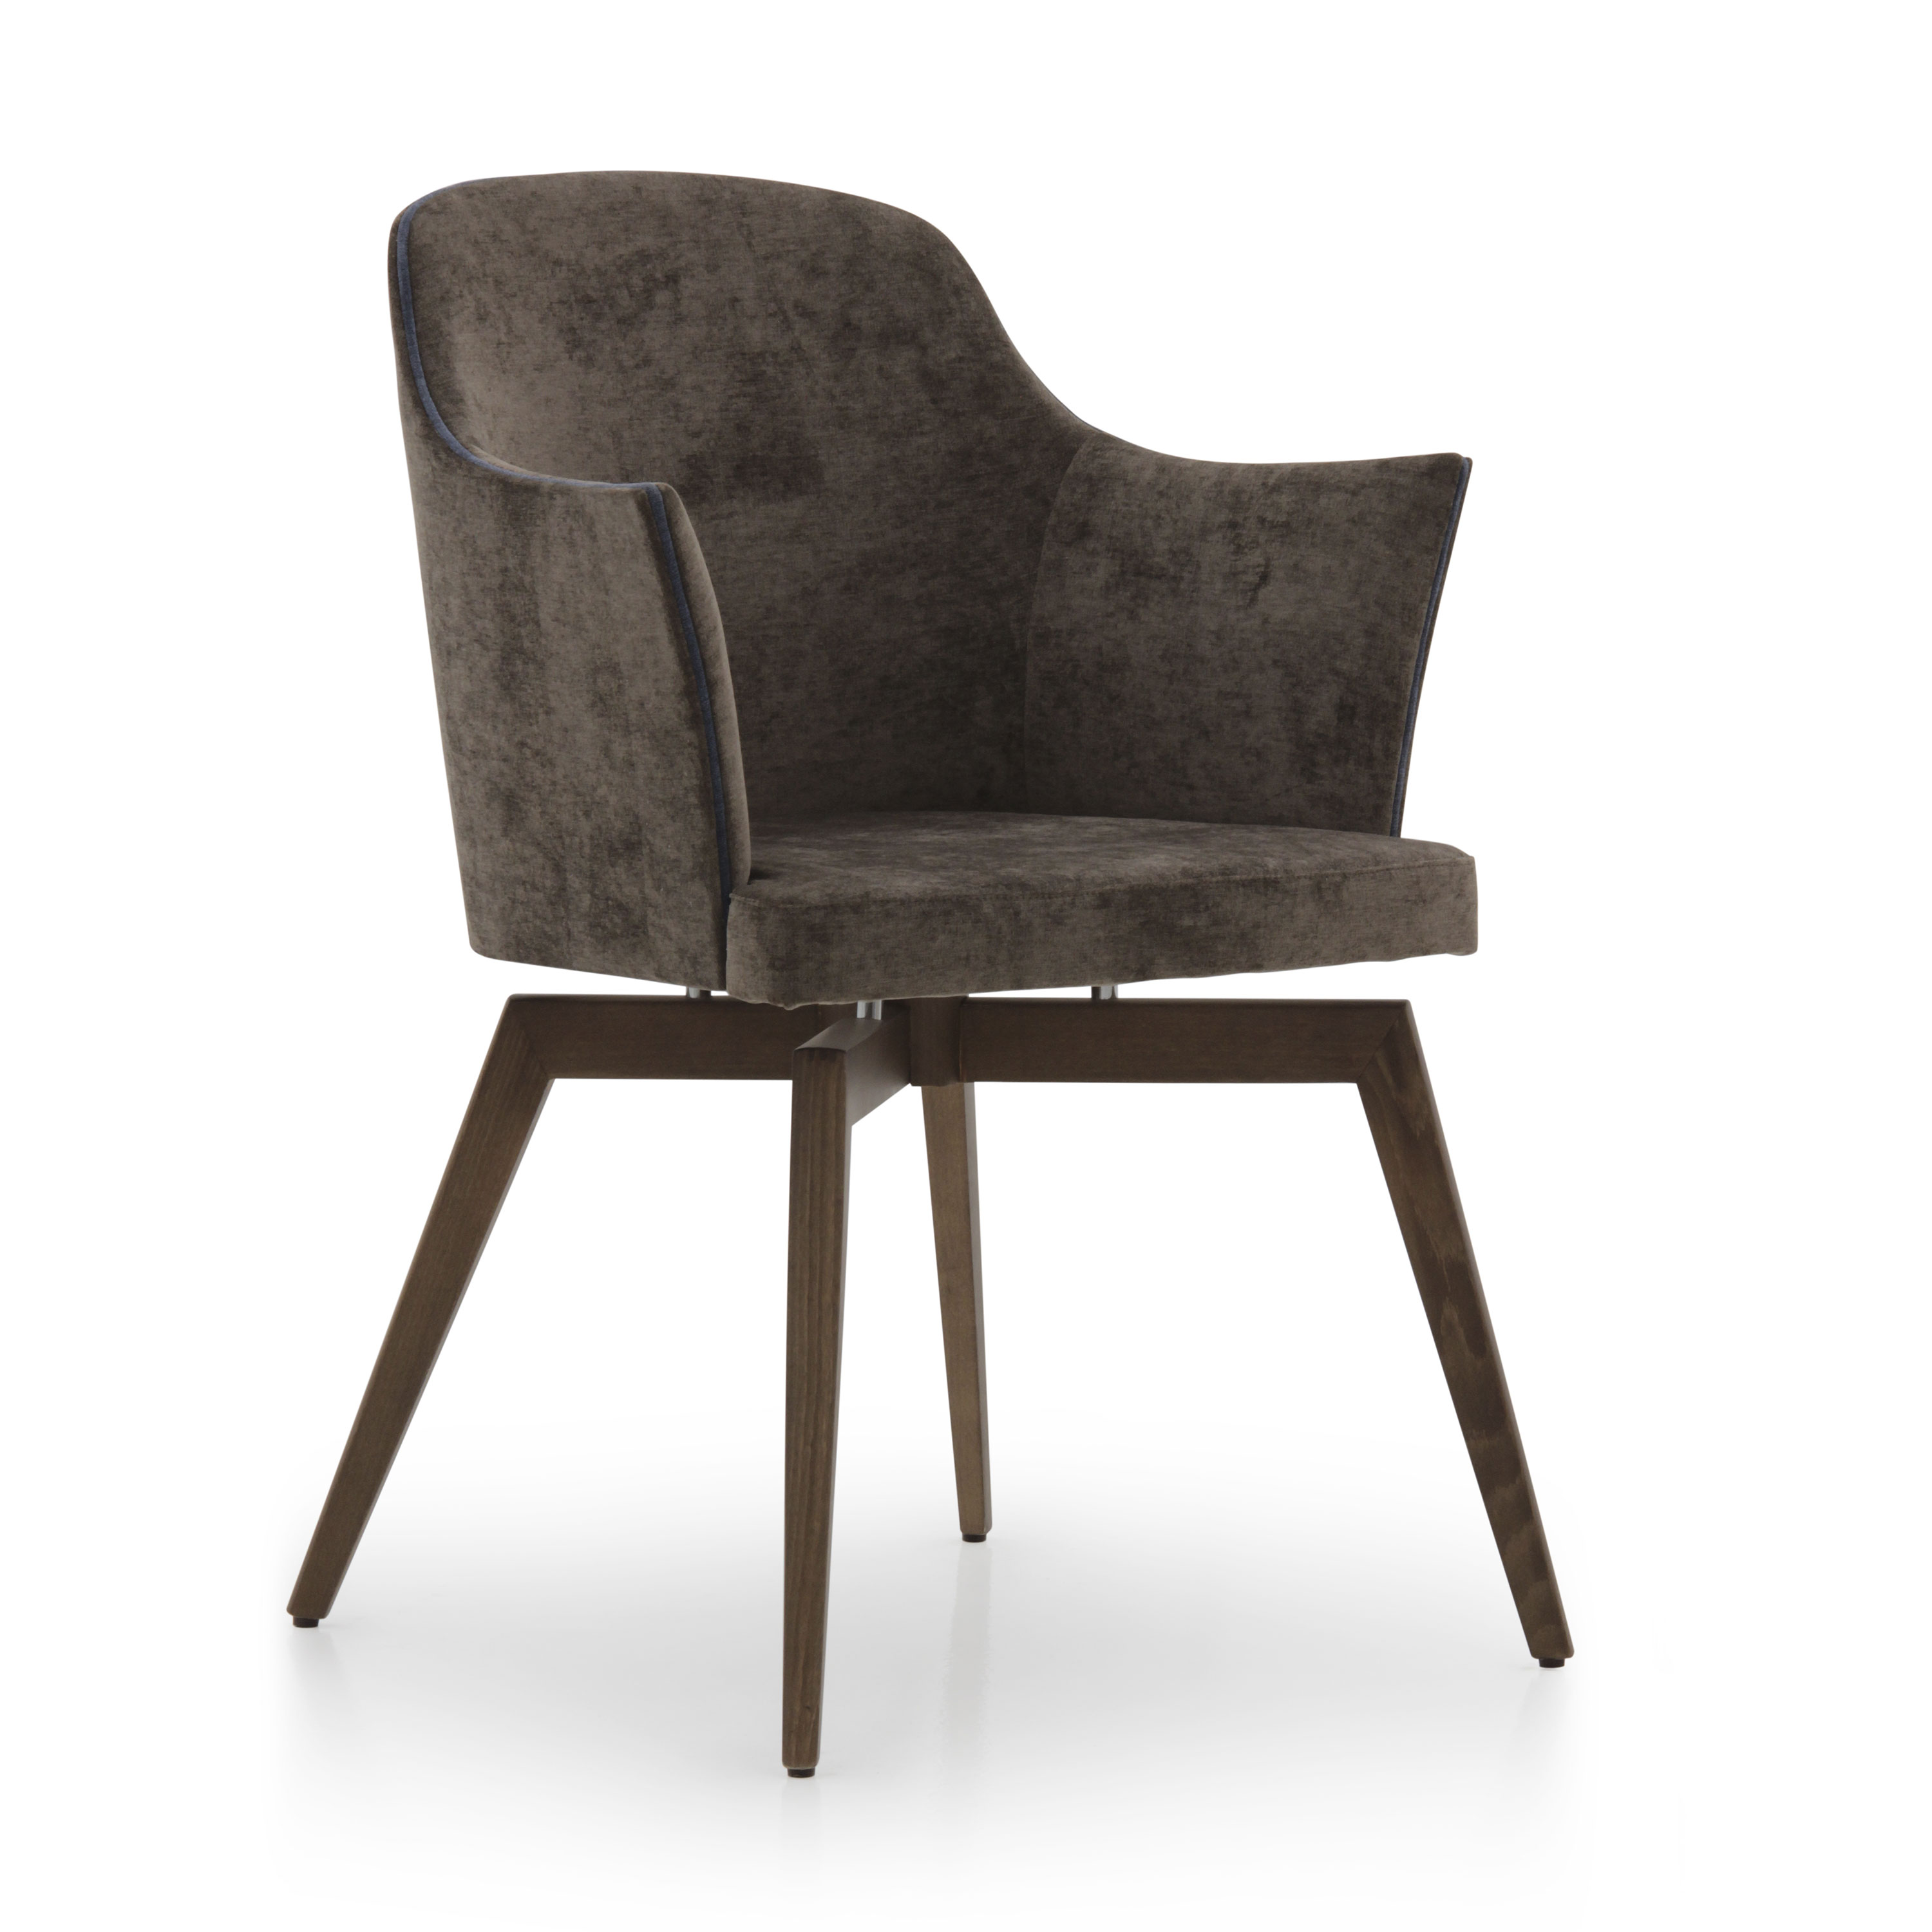 Modern style small armchair made of wood marta 954 for Small contemporary armchairs